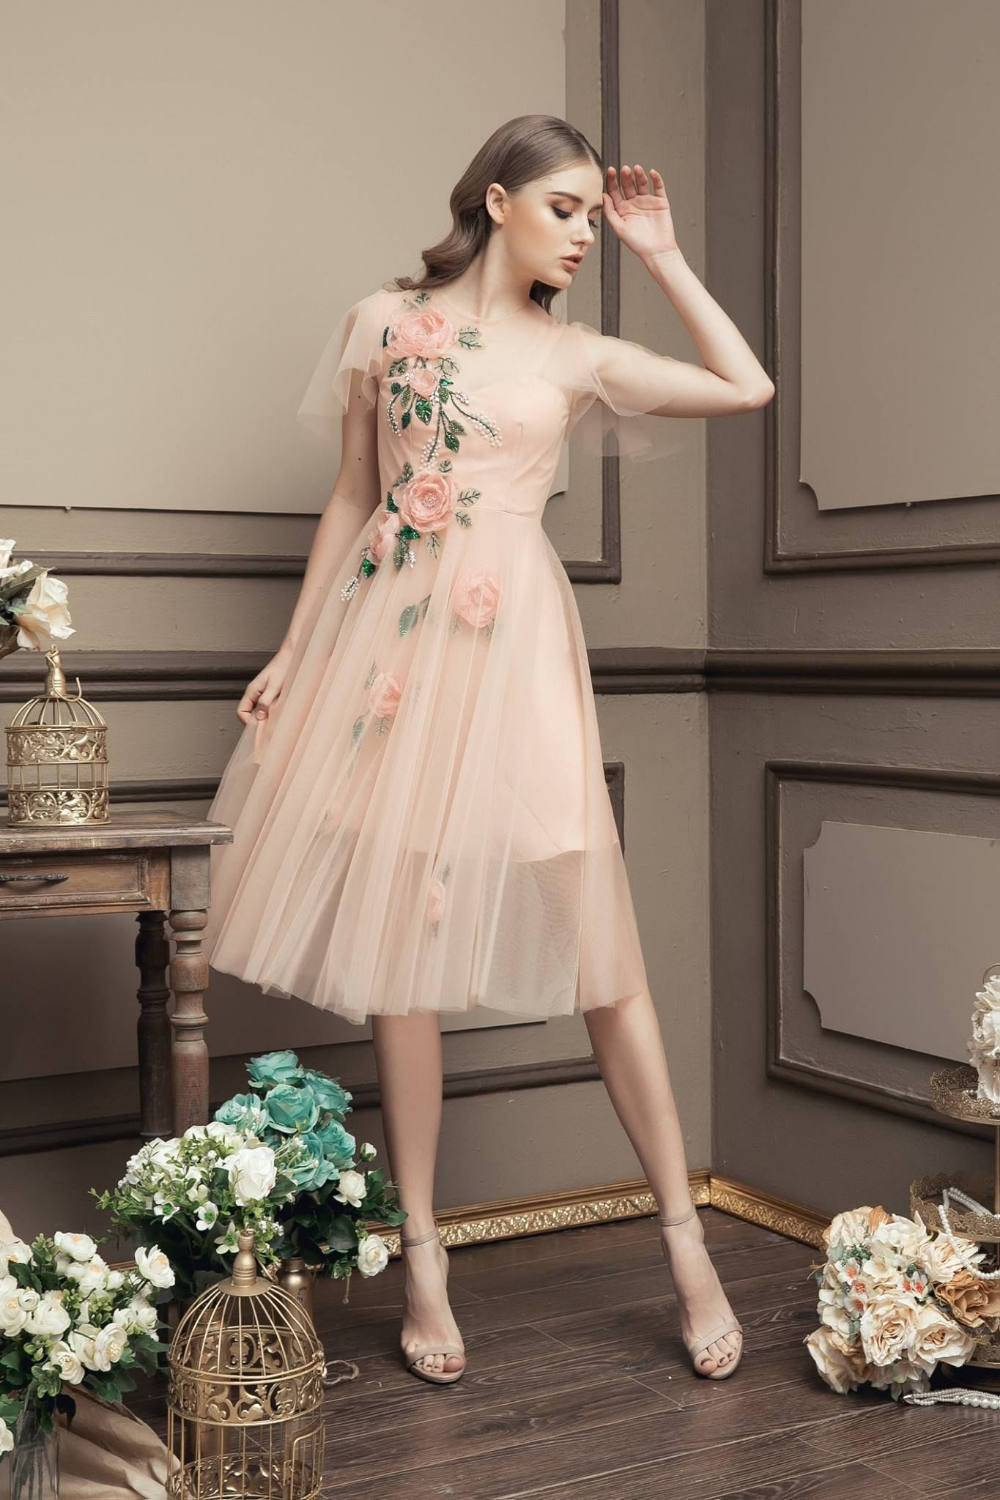 Customized Feminine Lace Party Dresses New Arrival Colorized Embroidery Lace Half Sleeves Knee Length Homecoming Dresses Prom Dress – Dresses